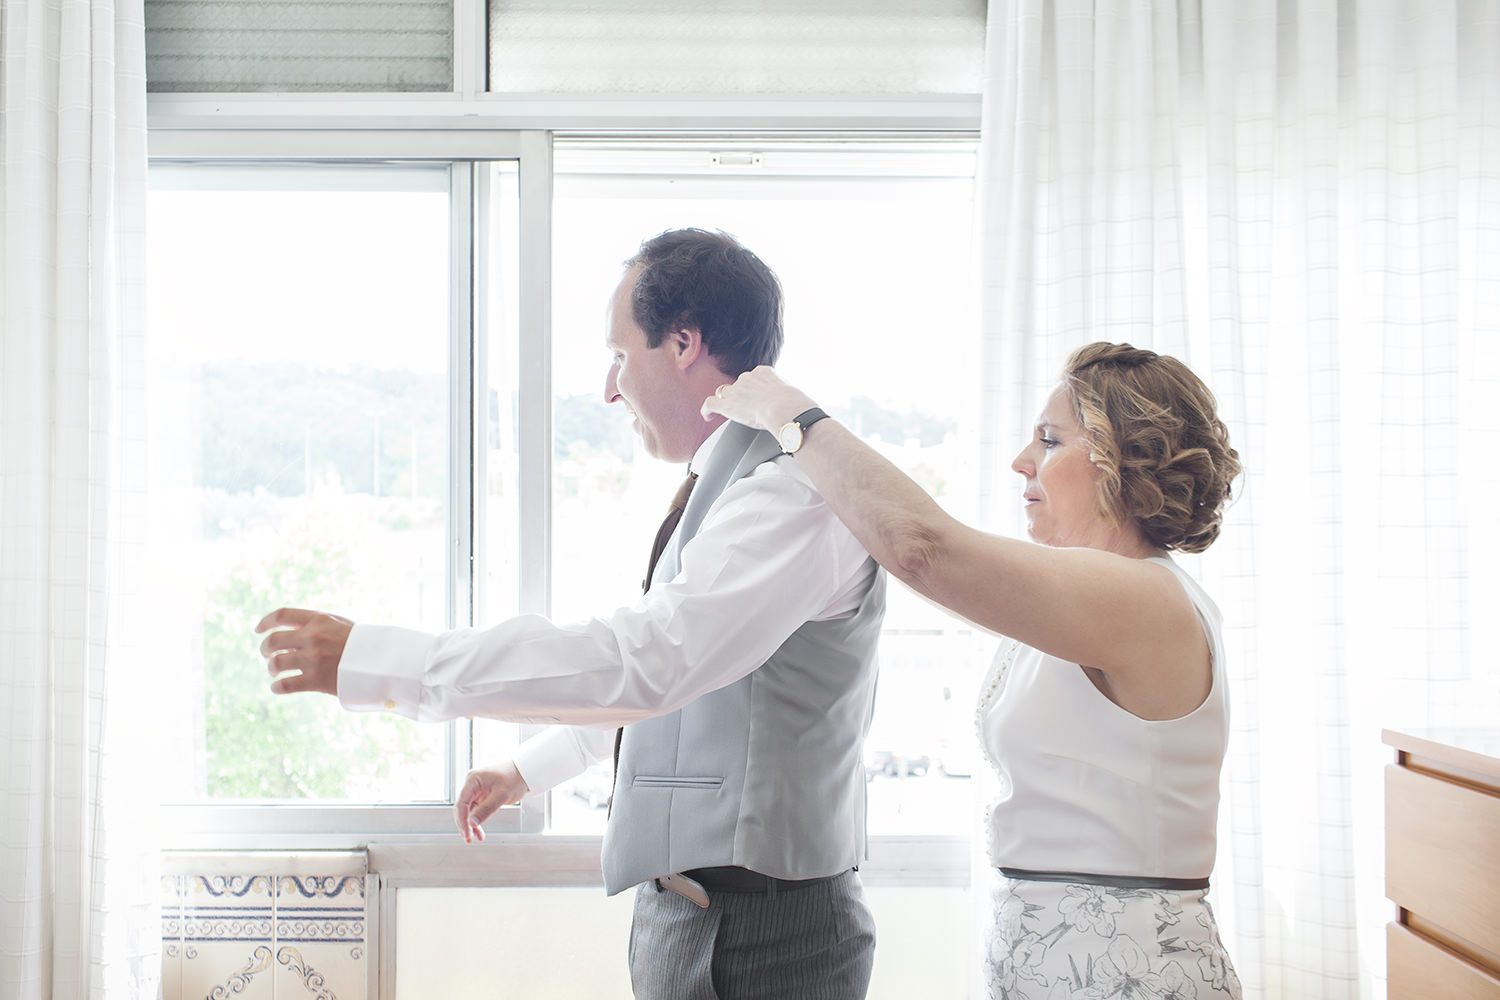 areias-seixo-wedding-photographer-terra-fotografia-041.jpg